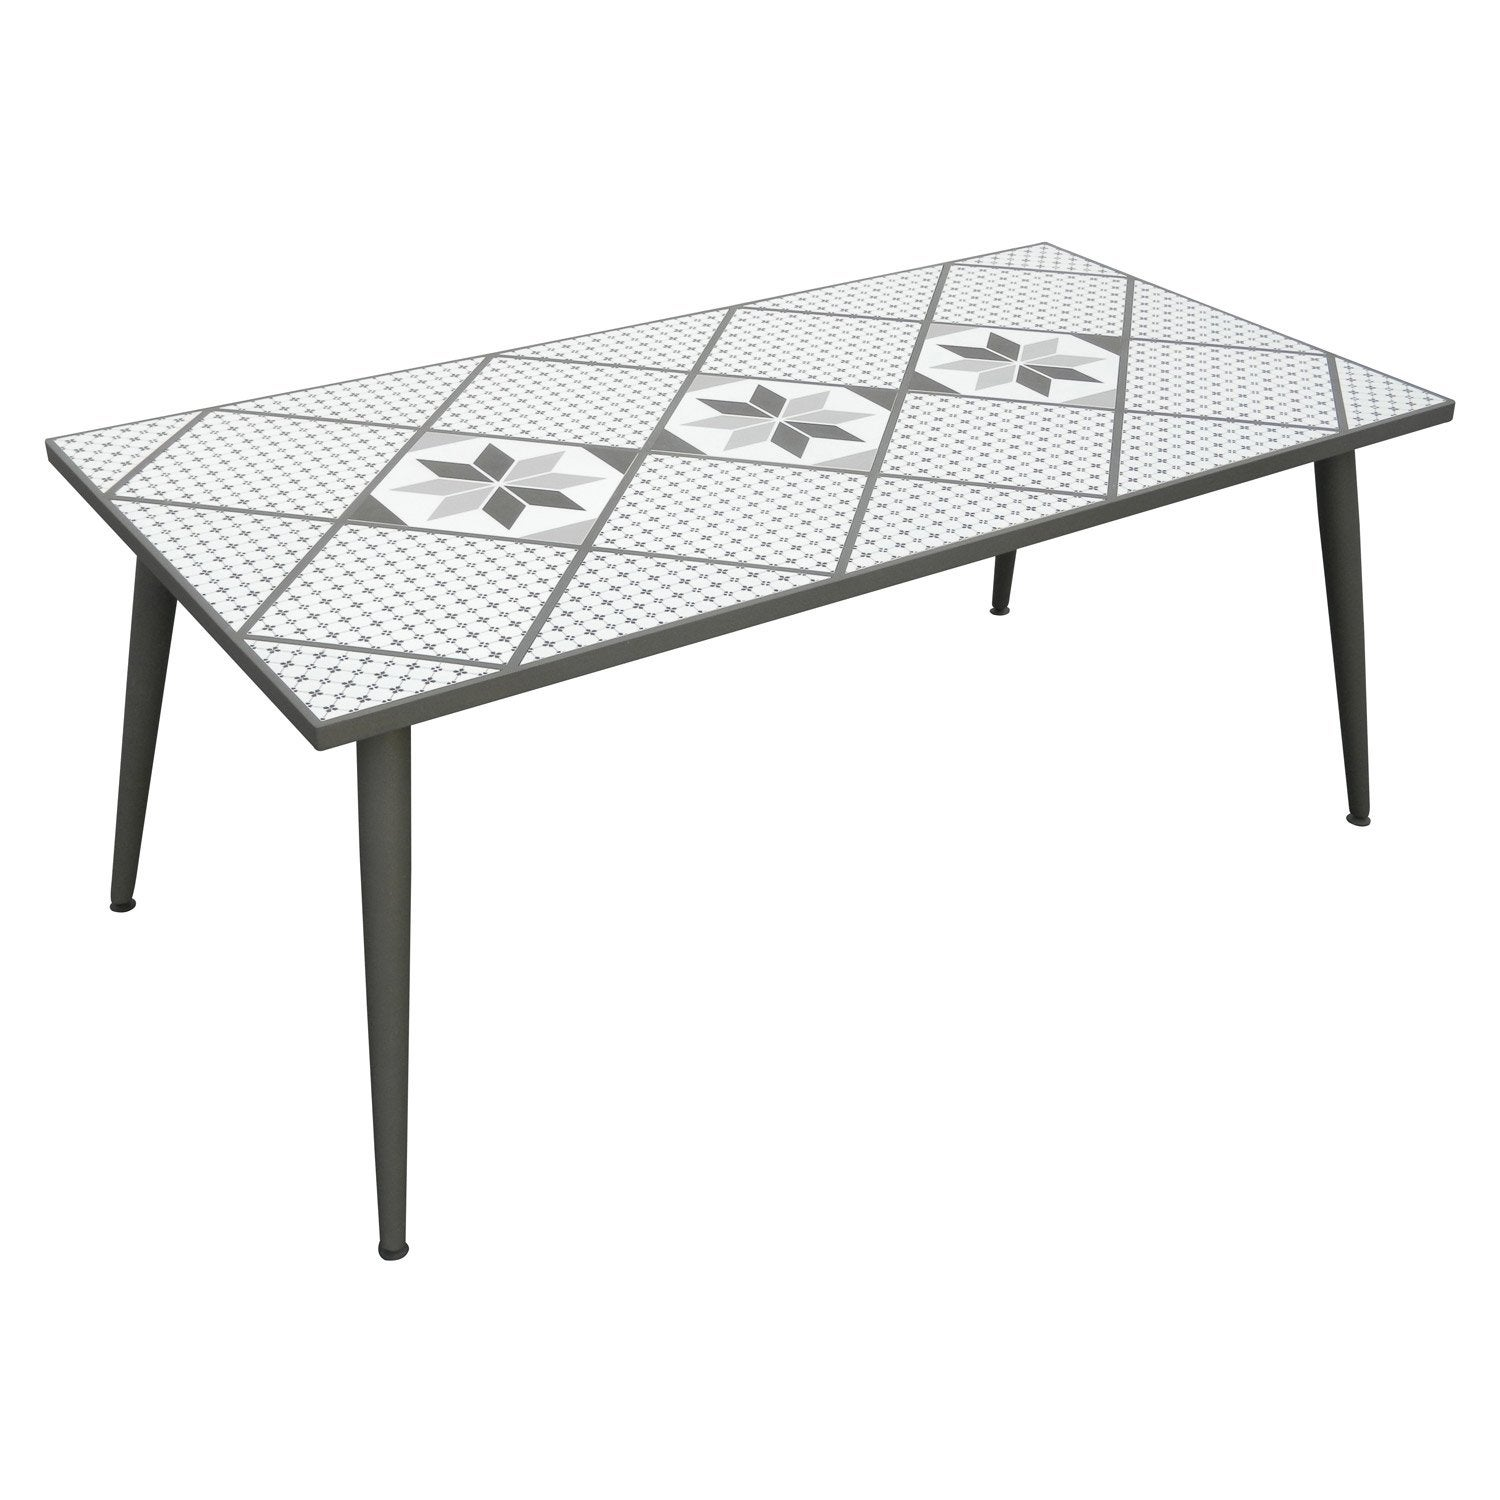 table de jardin mosaika rectangulaire gris 6 personnes leroy merlin. Black Bedroom Furniture Sets. Home Design Ideas